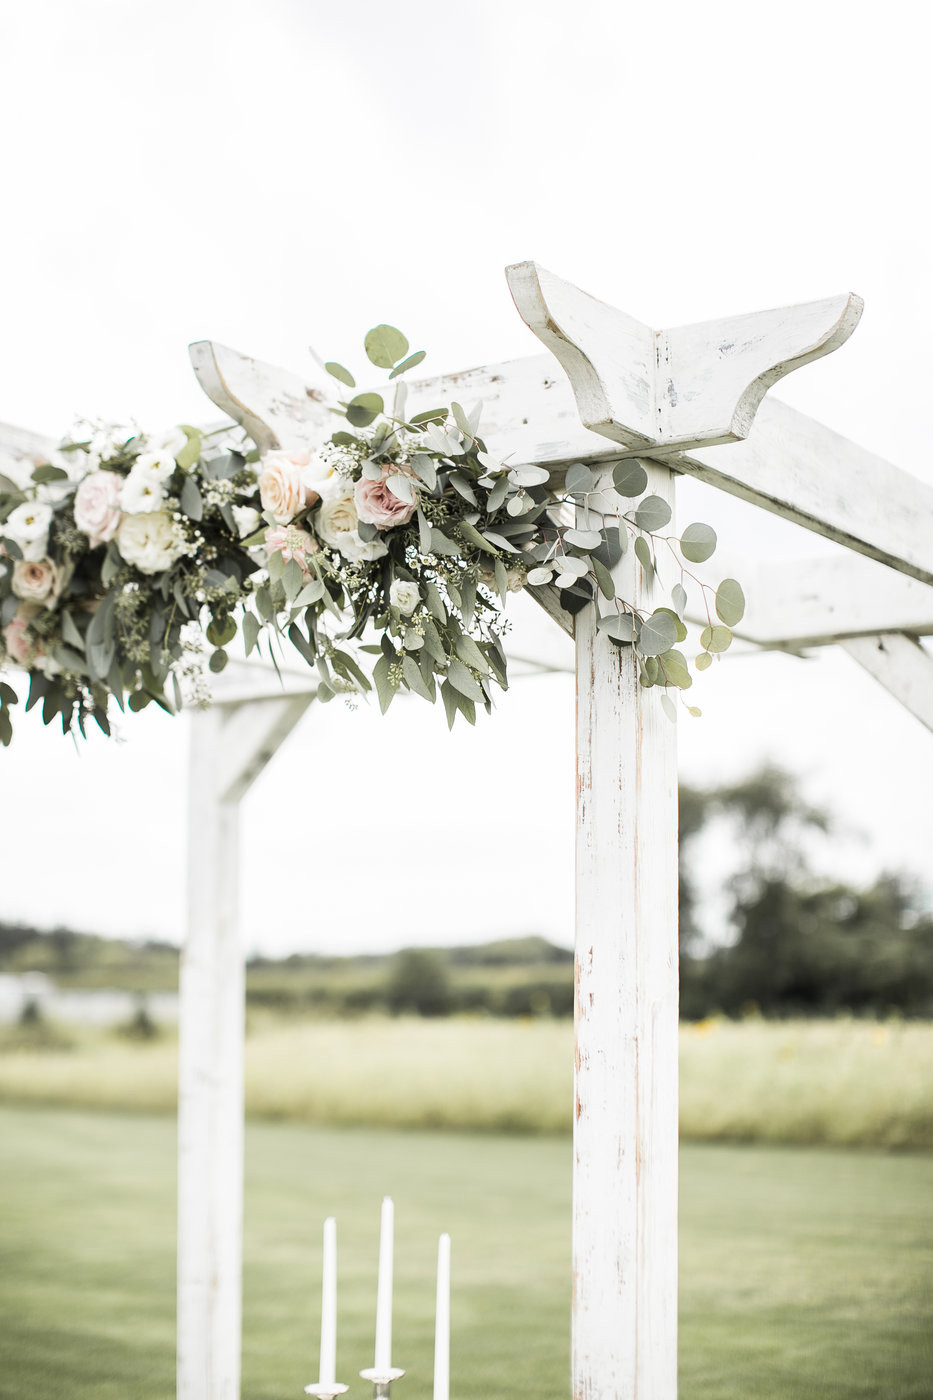 blush rose and eucalyptus garland by studio bloom iowa florist on white wood arbor for outdoor wedding ceremony at ashton hill